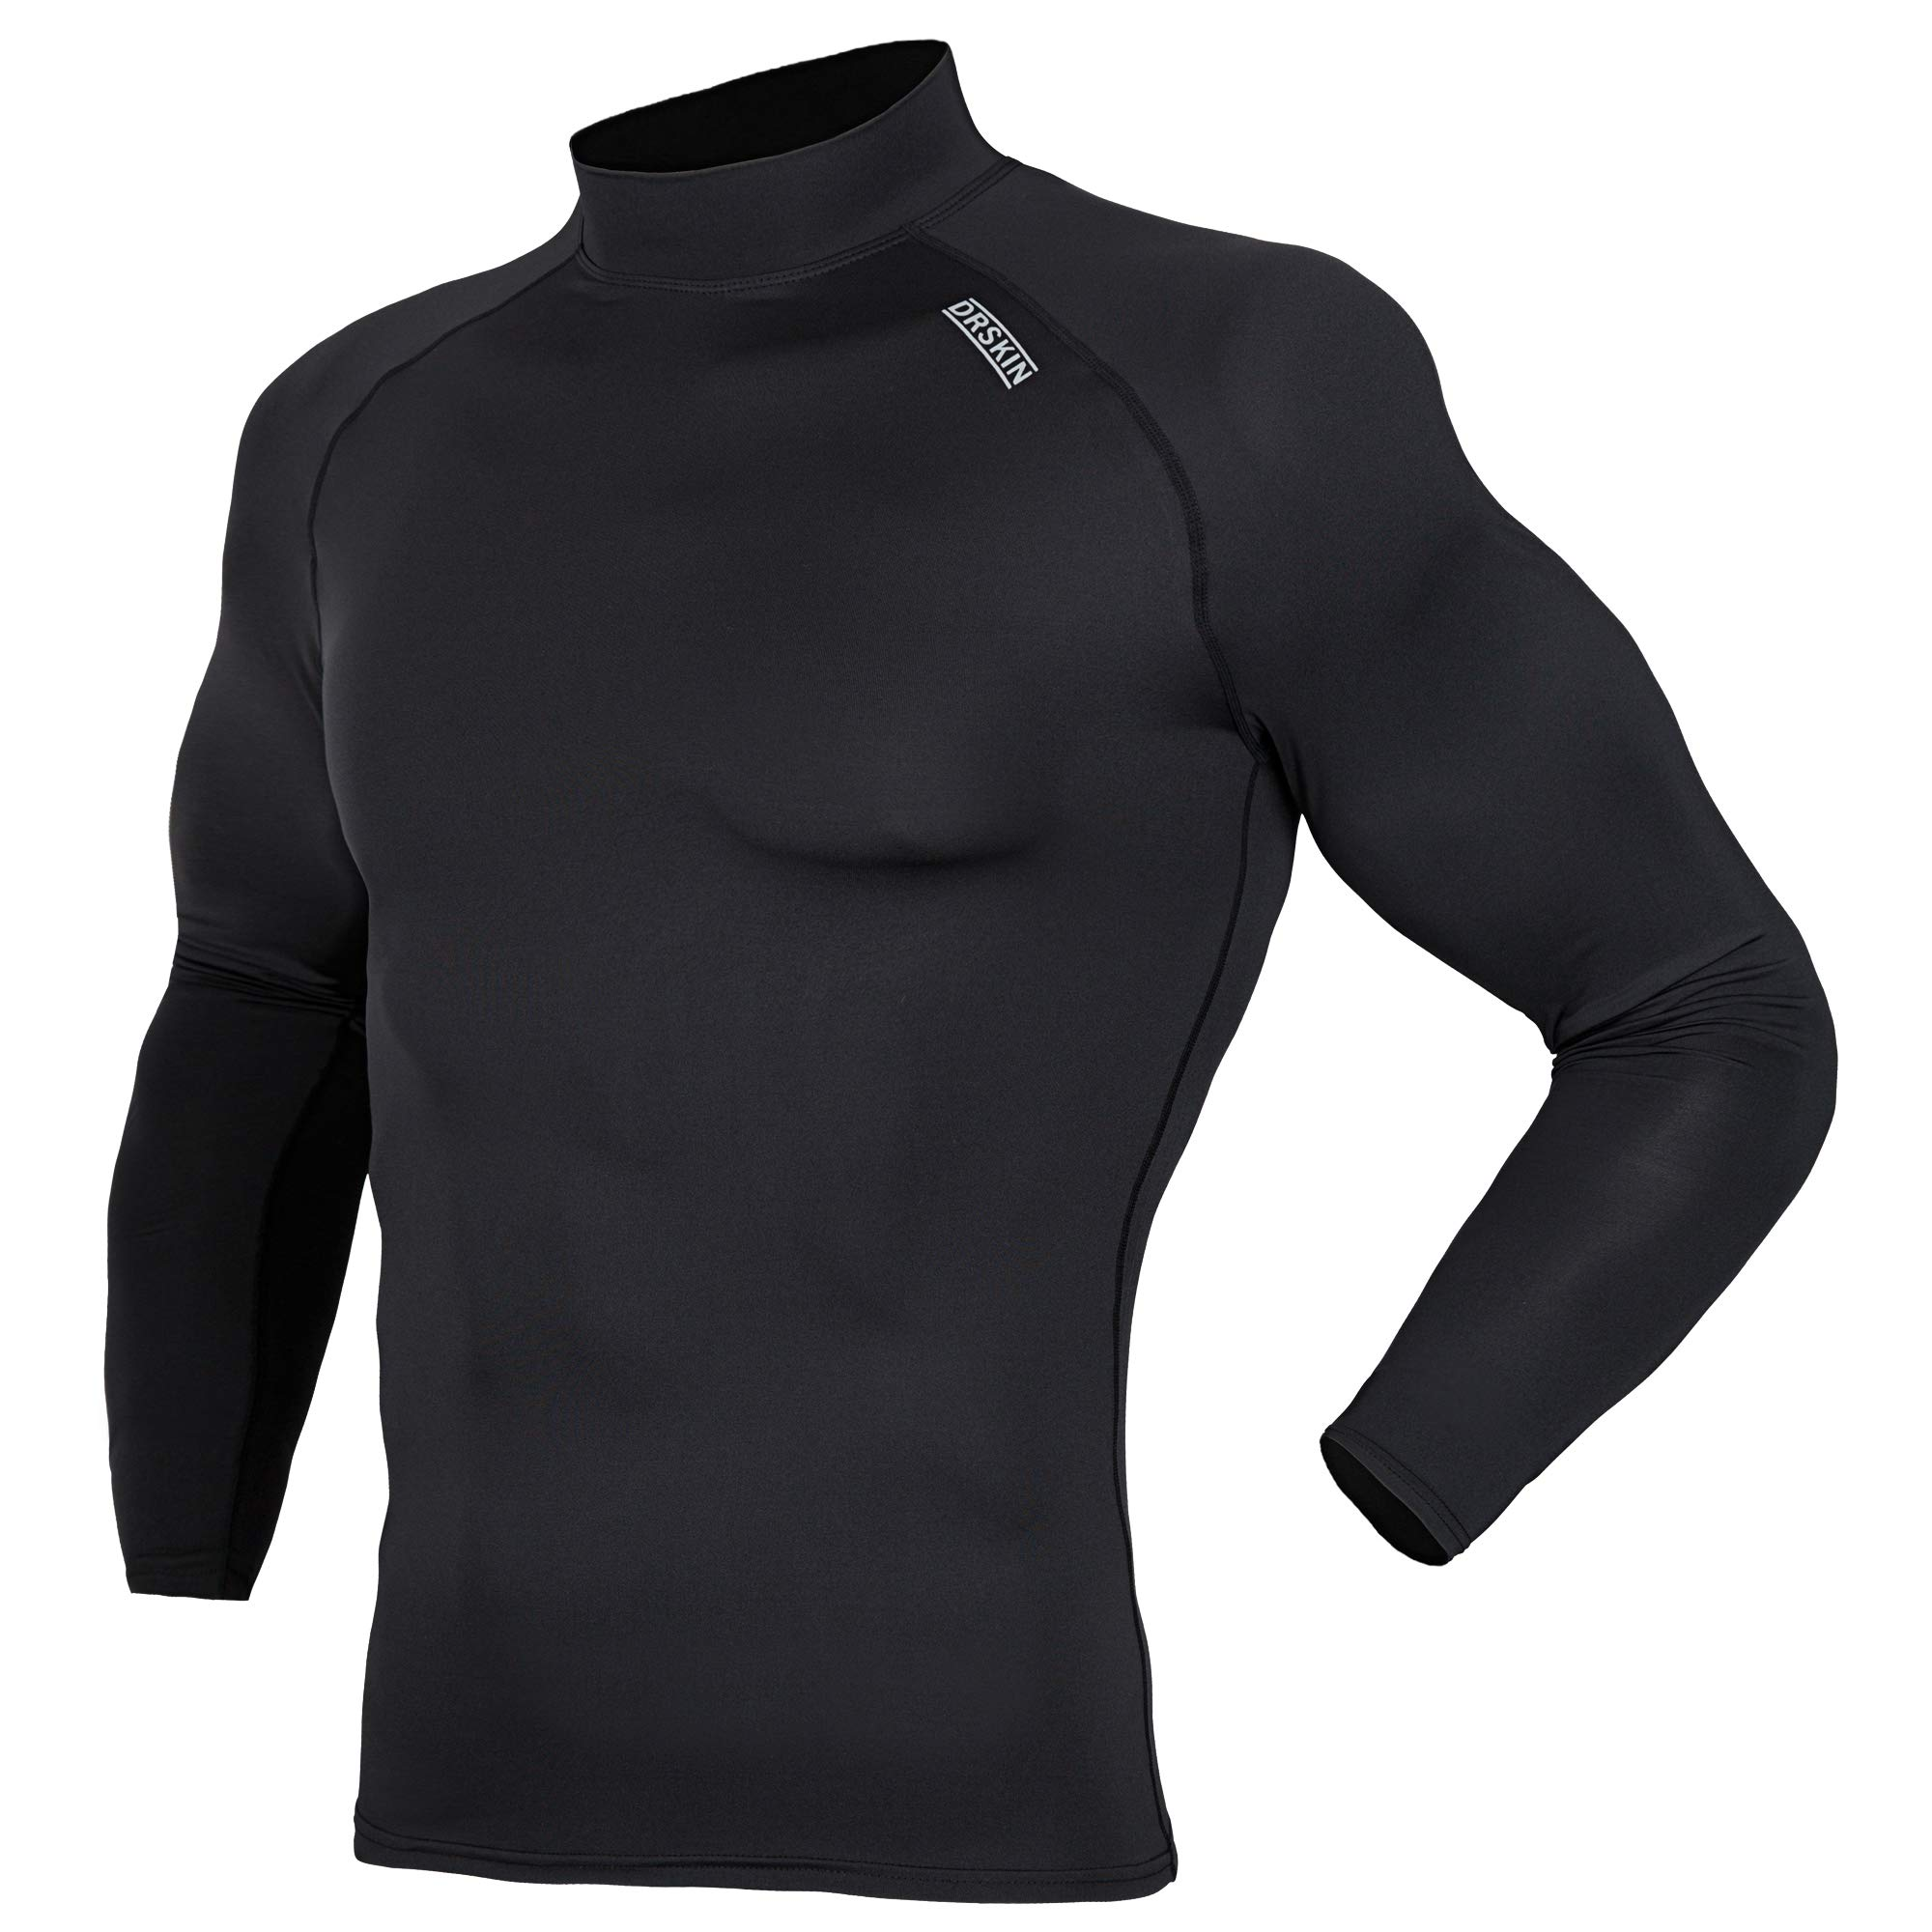 86f18bf24 DRSKIN UV Sun Protection Long Sleeve Top Shirts Skins Tee Compression Base  Layer product image